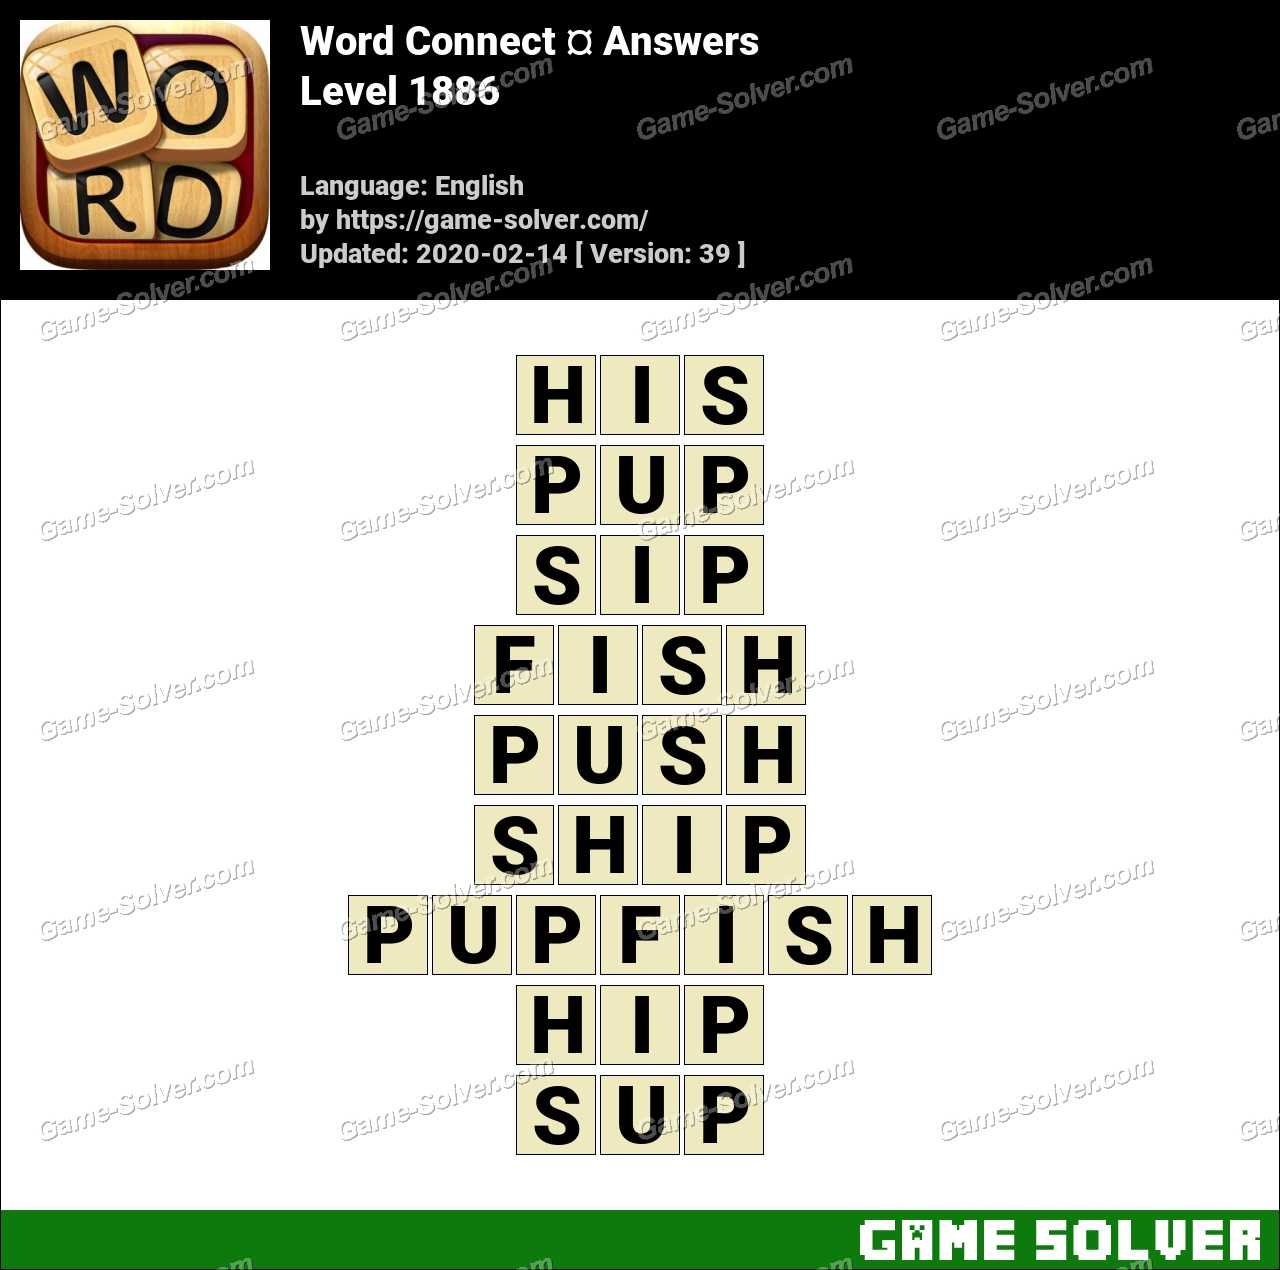 Word Connect Level 1886 Answers